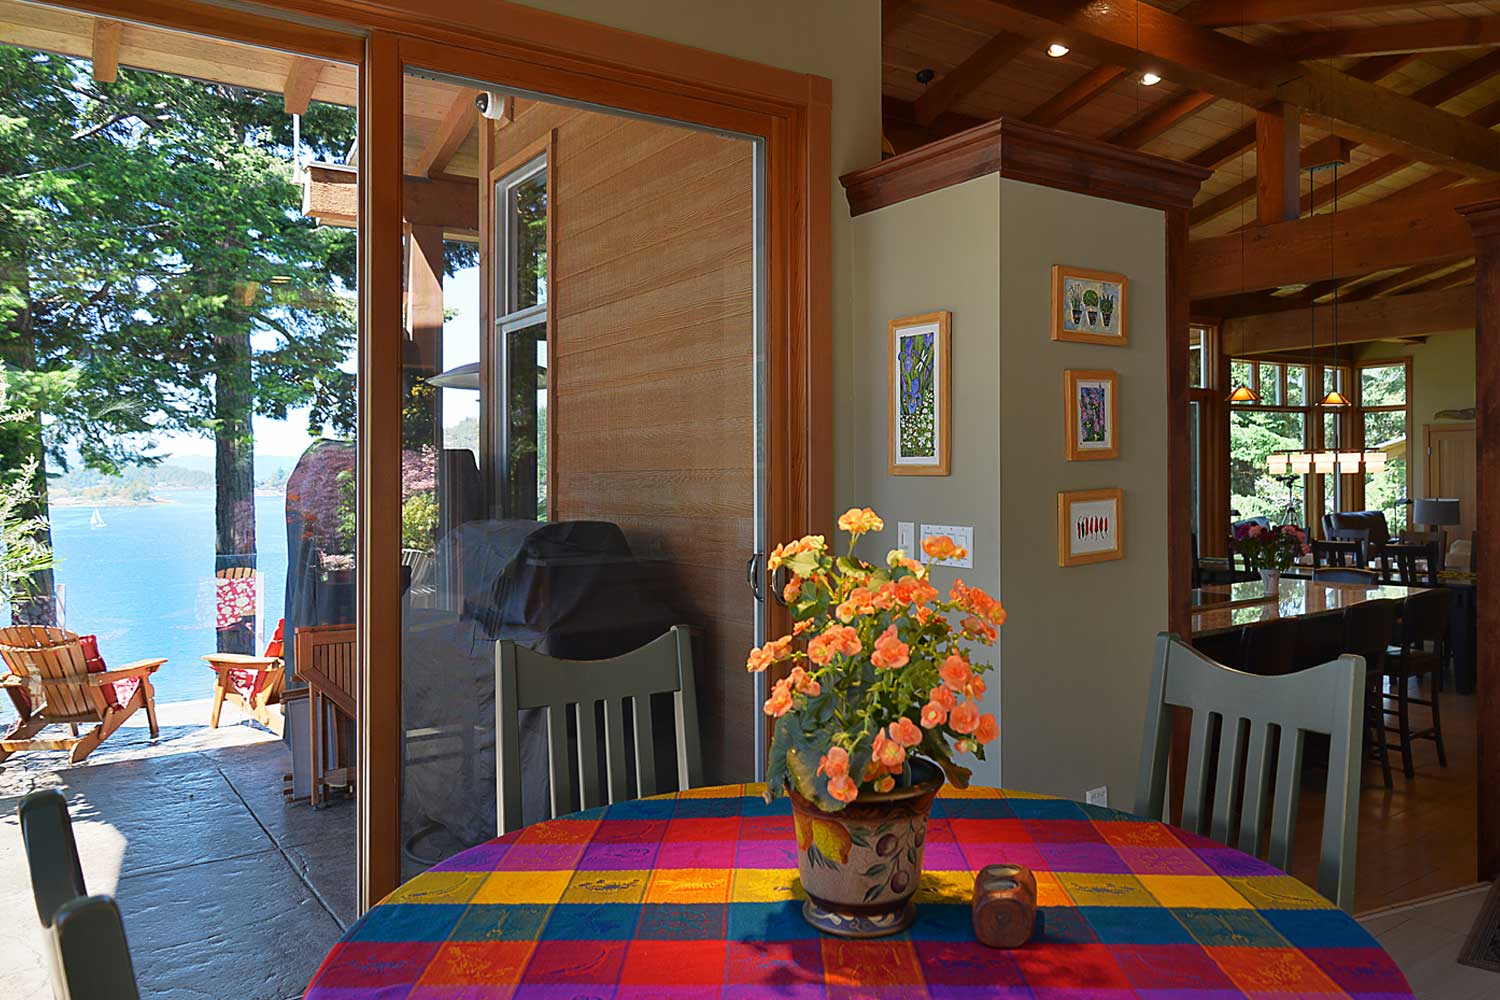 A small table with a colorful tablecloth in the breakfast nook on the main floor overlooks the bright blue Pender Harbour.